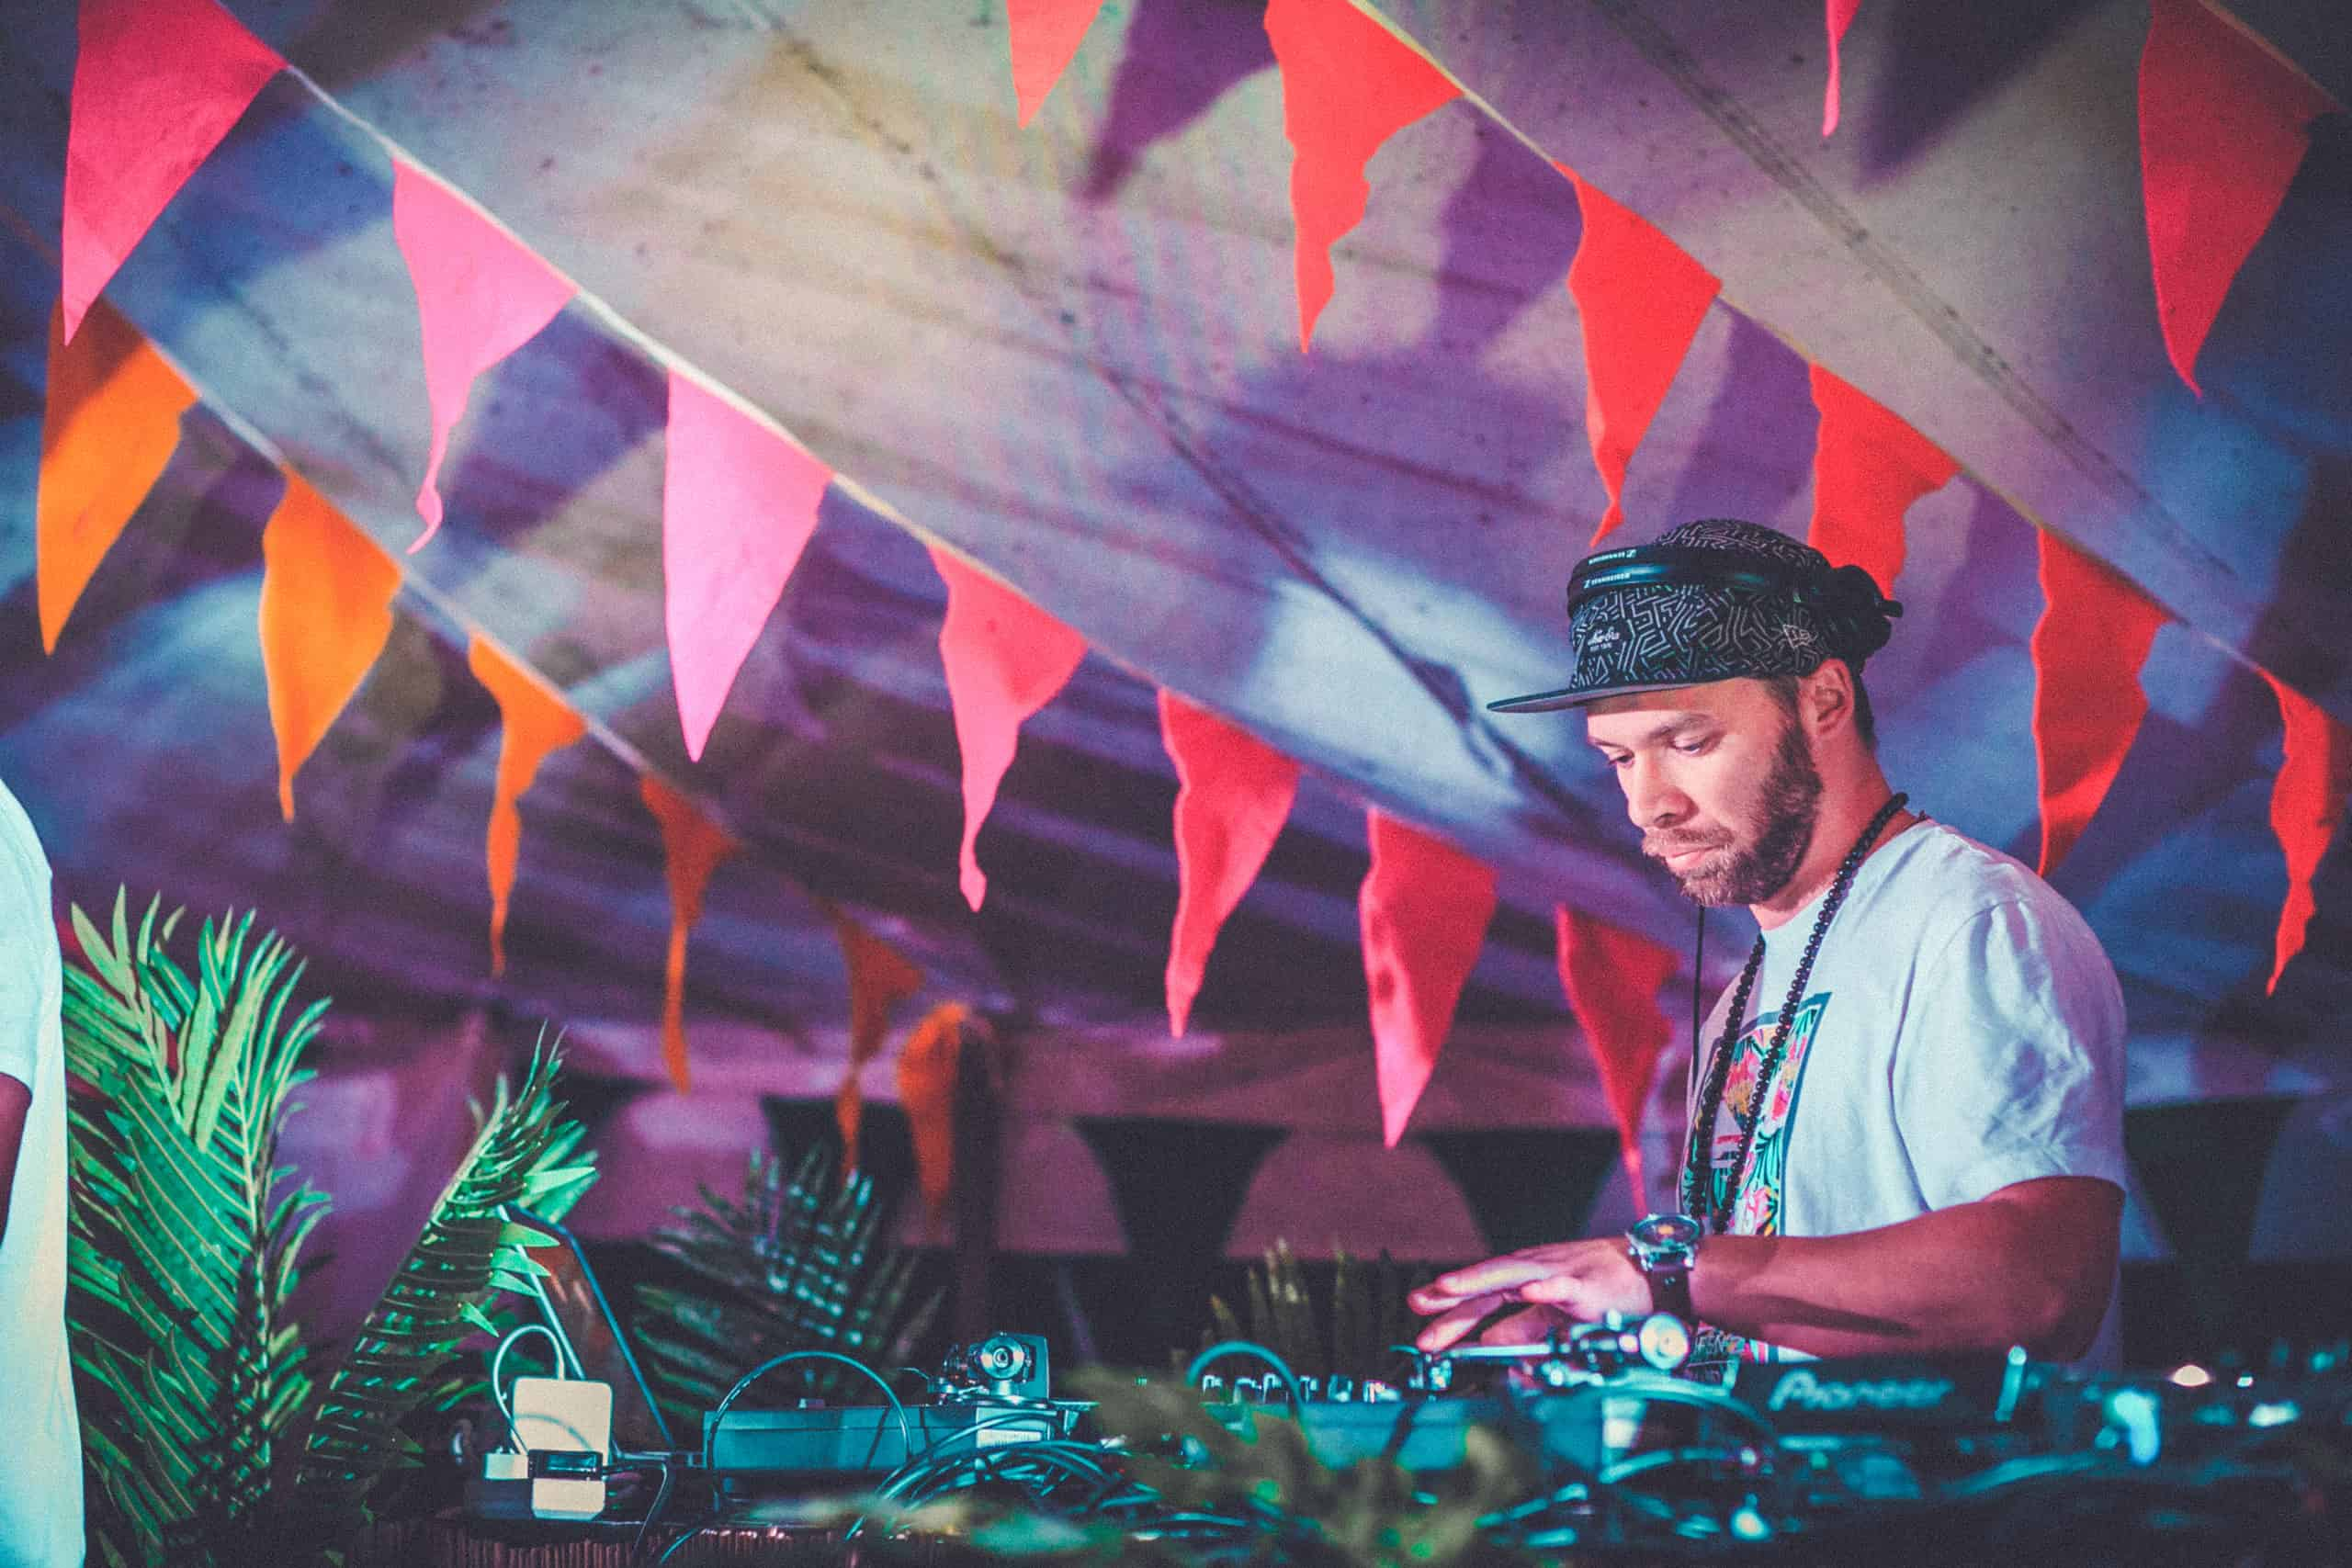 Shaka Loves You on the decks on stage at Camp Wildfire. A summer weekend break in a forest near London and Kent. An outdoor woodland retreat featuring adventure activities, live music, DJs, parties and camping. Half summer adventure activity camp, half music festival, for adults only.